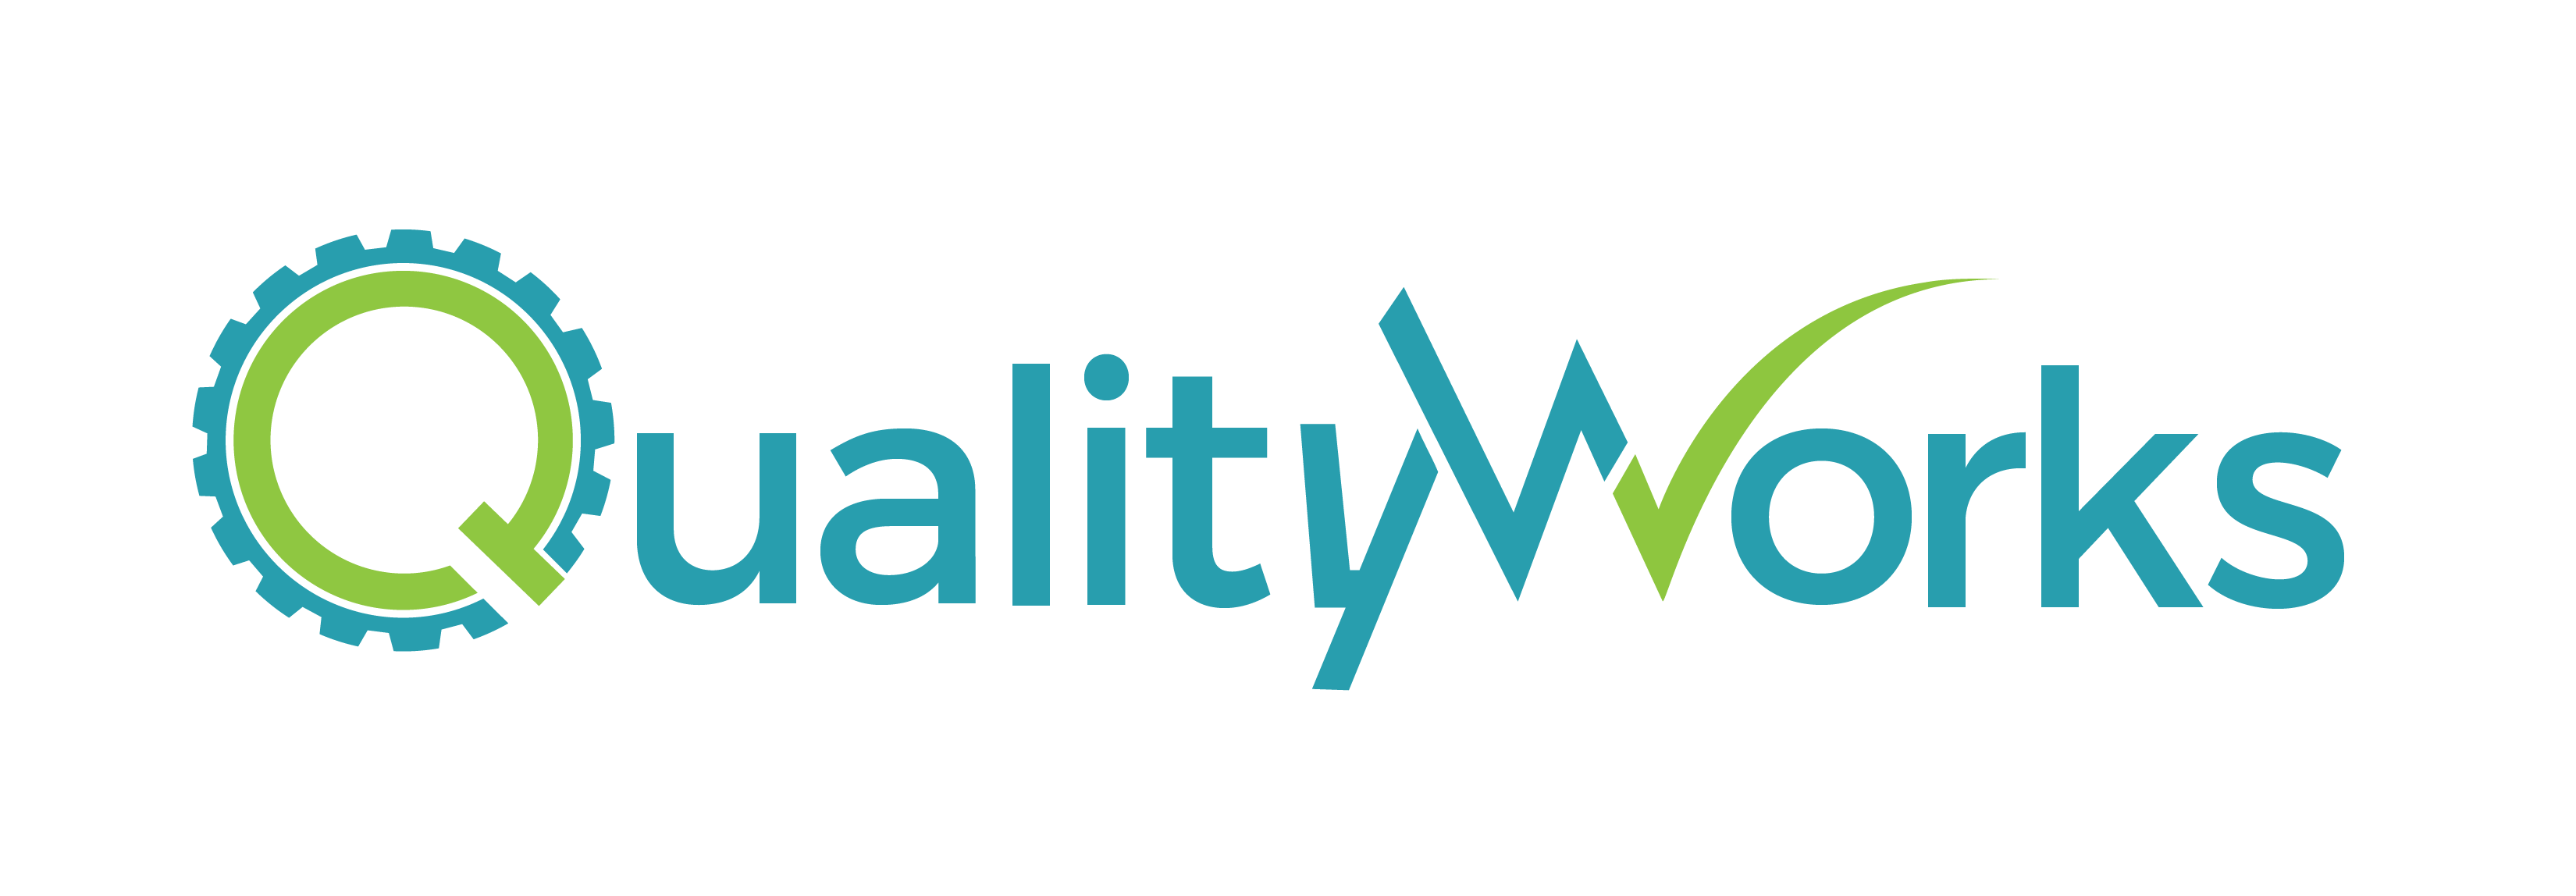 QualityWorks Consulting Group logo